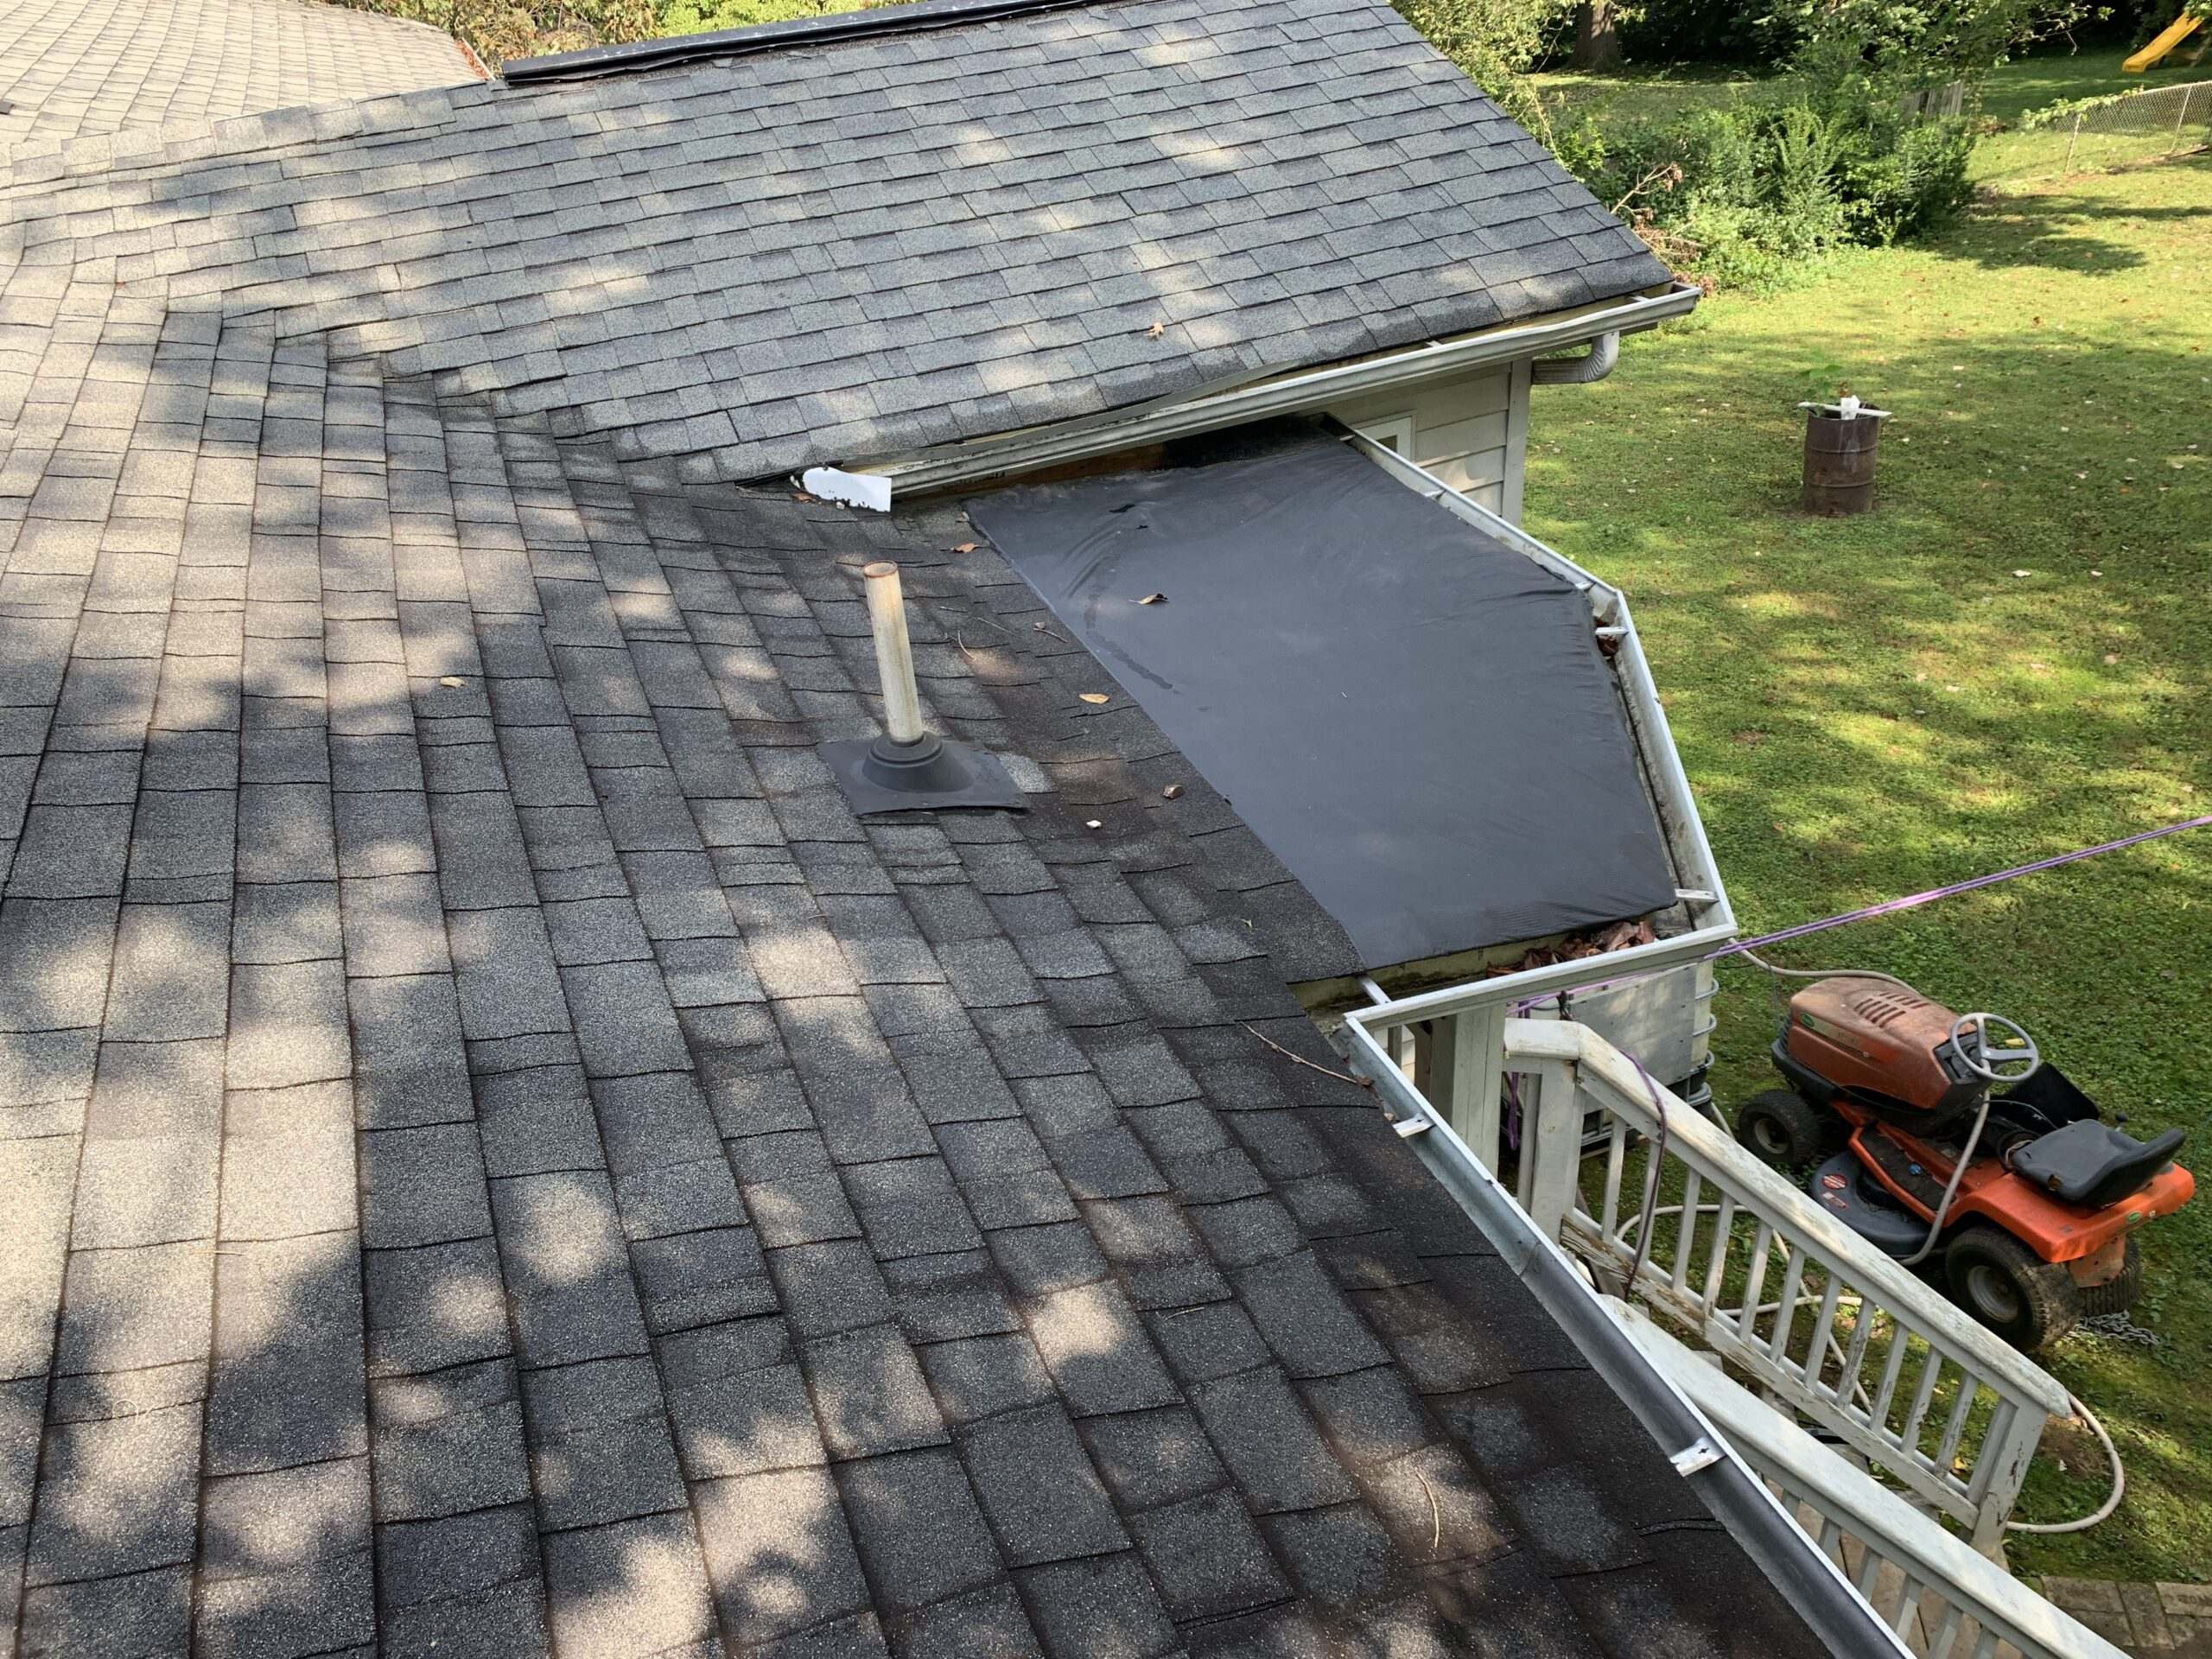 Improper flat roof membrane installation and improper framing and design lead to substantial water damage and rotten wood